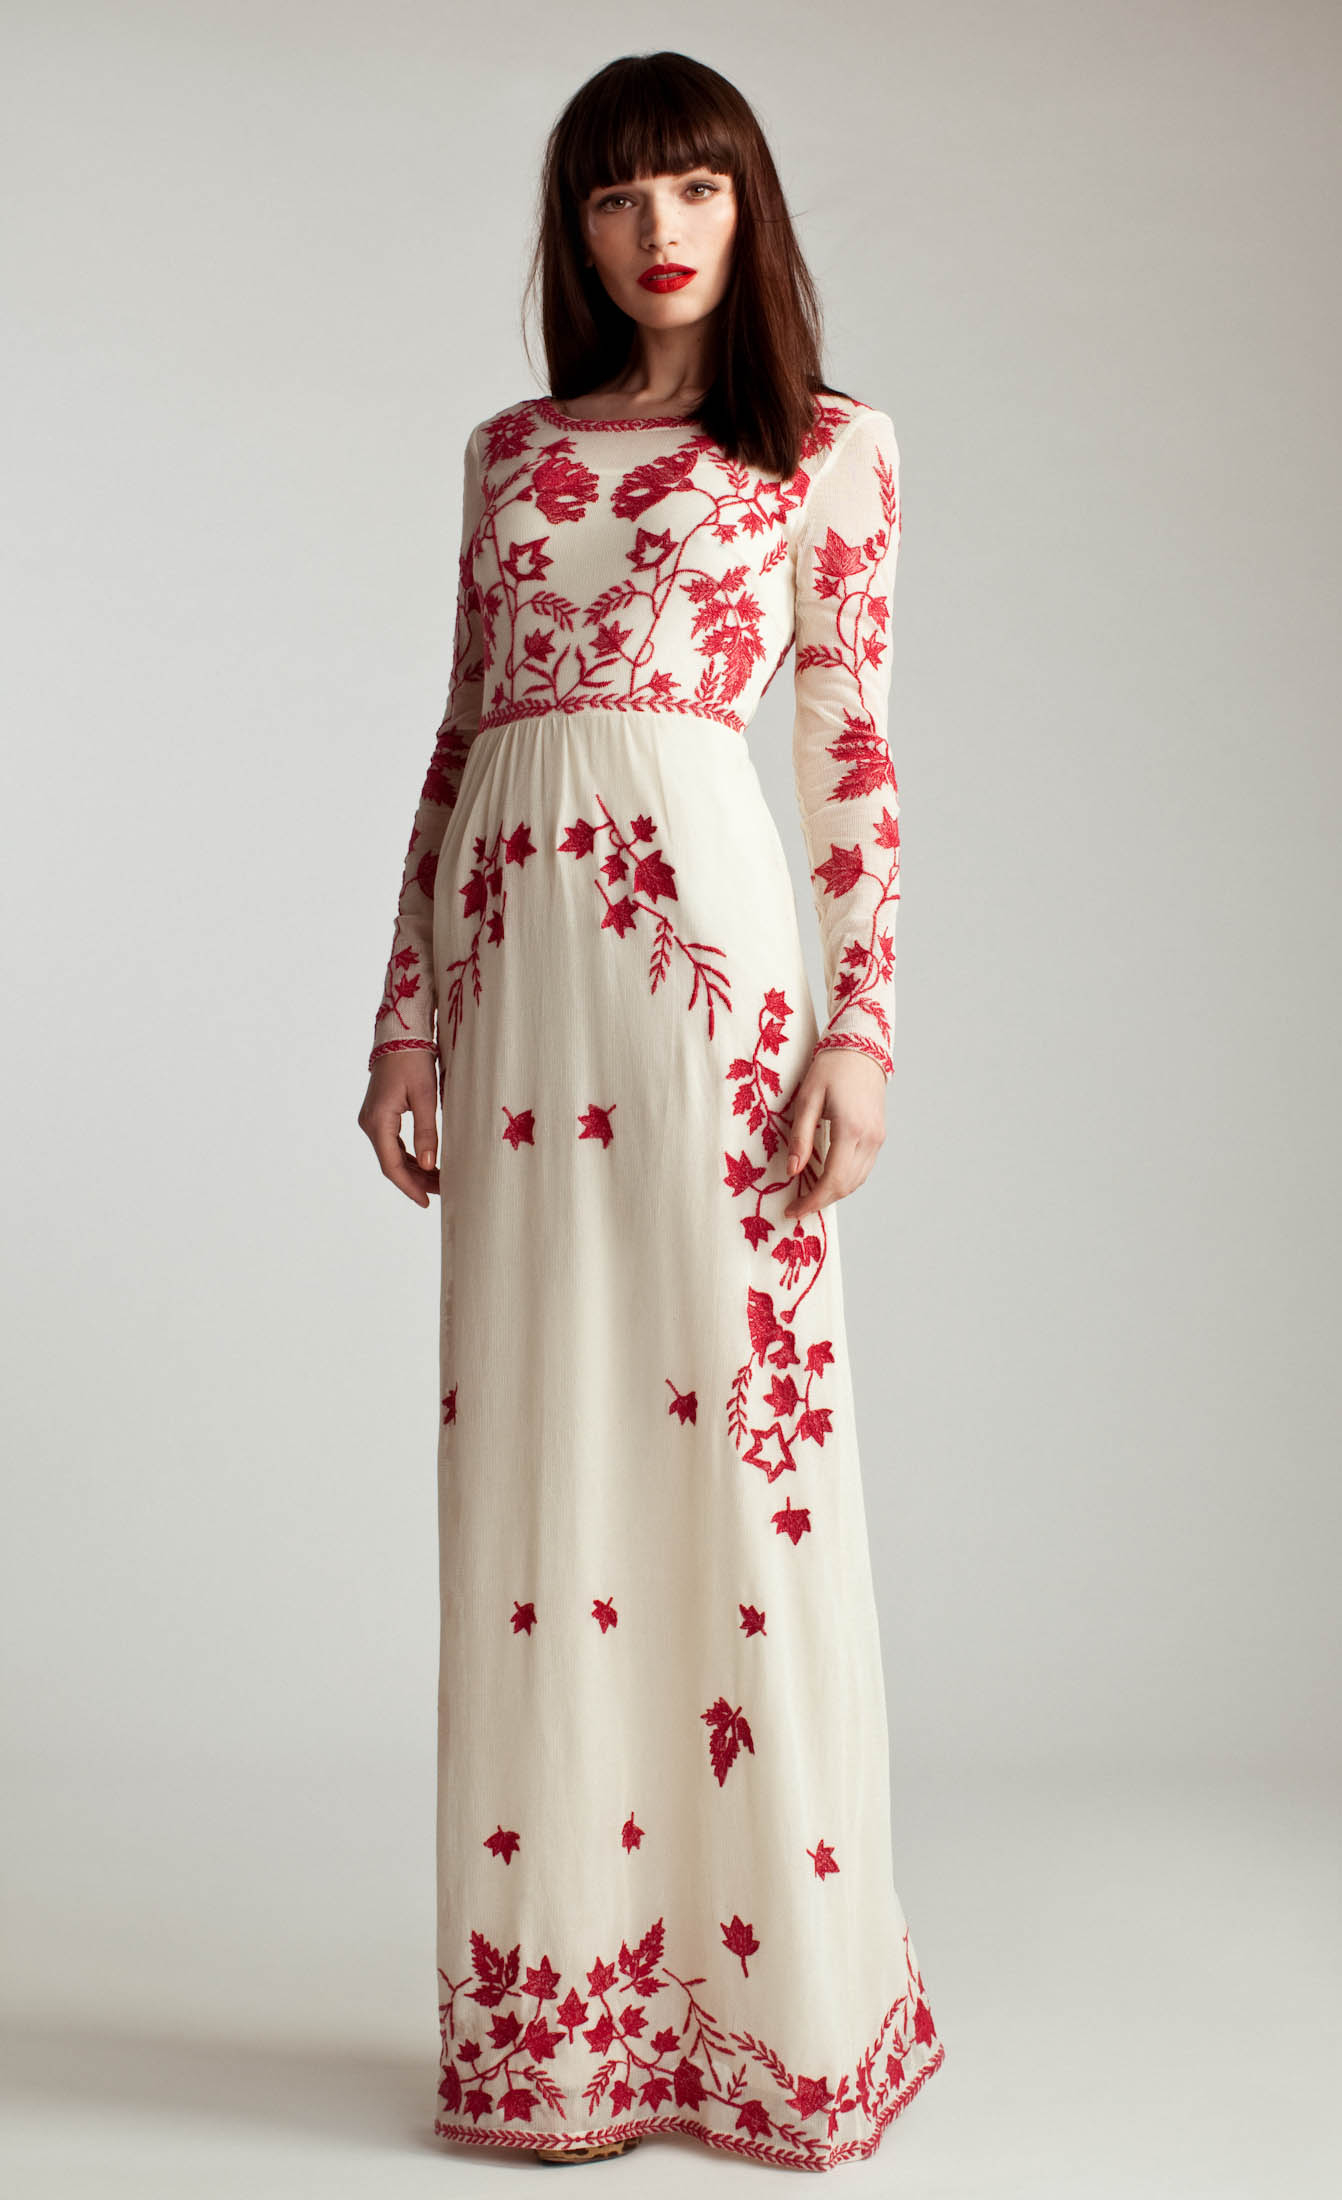 Lyst - Alice By Temperley Long Clover Dress in Red